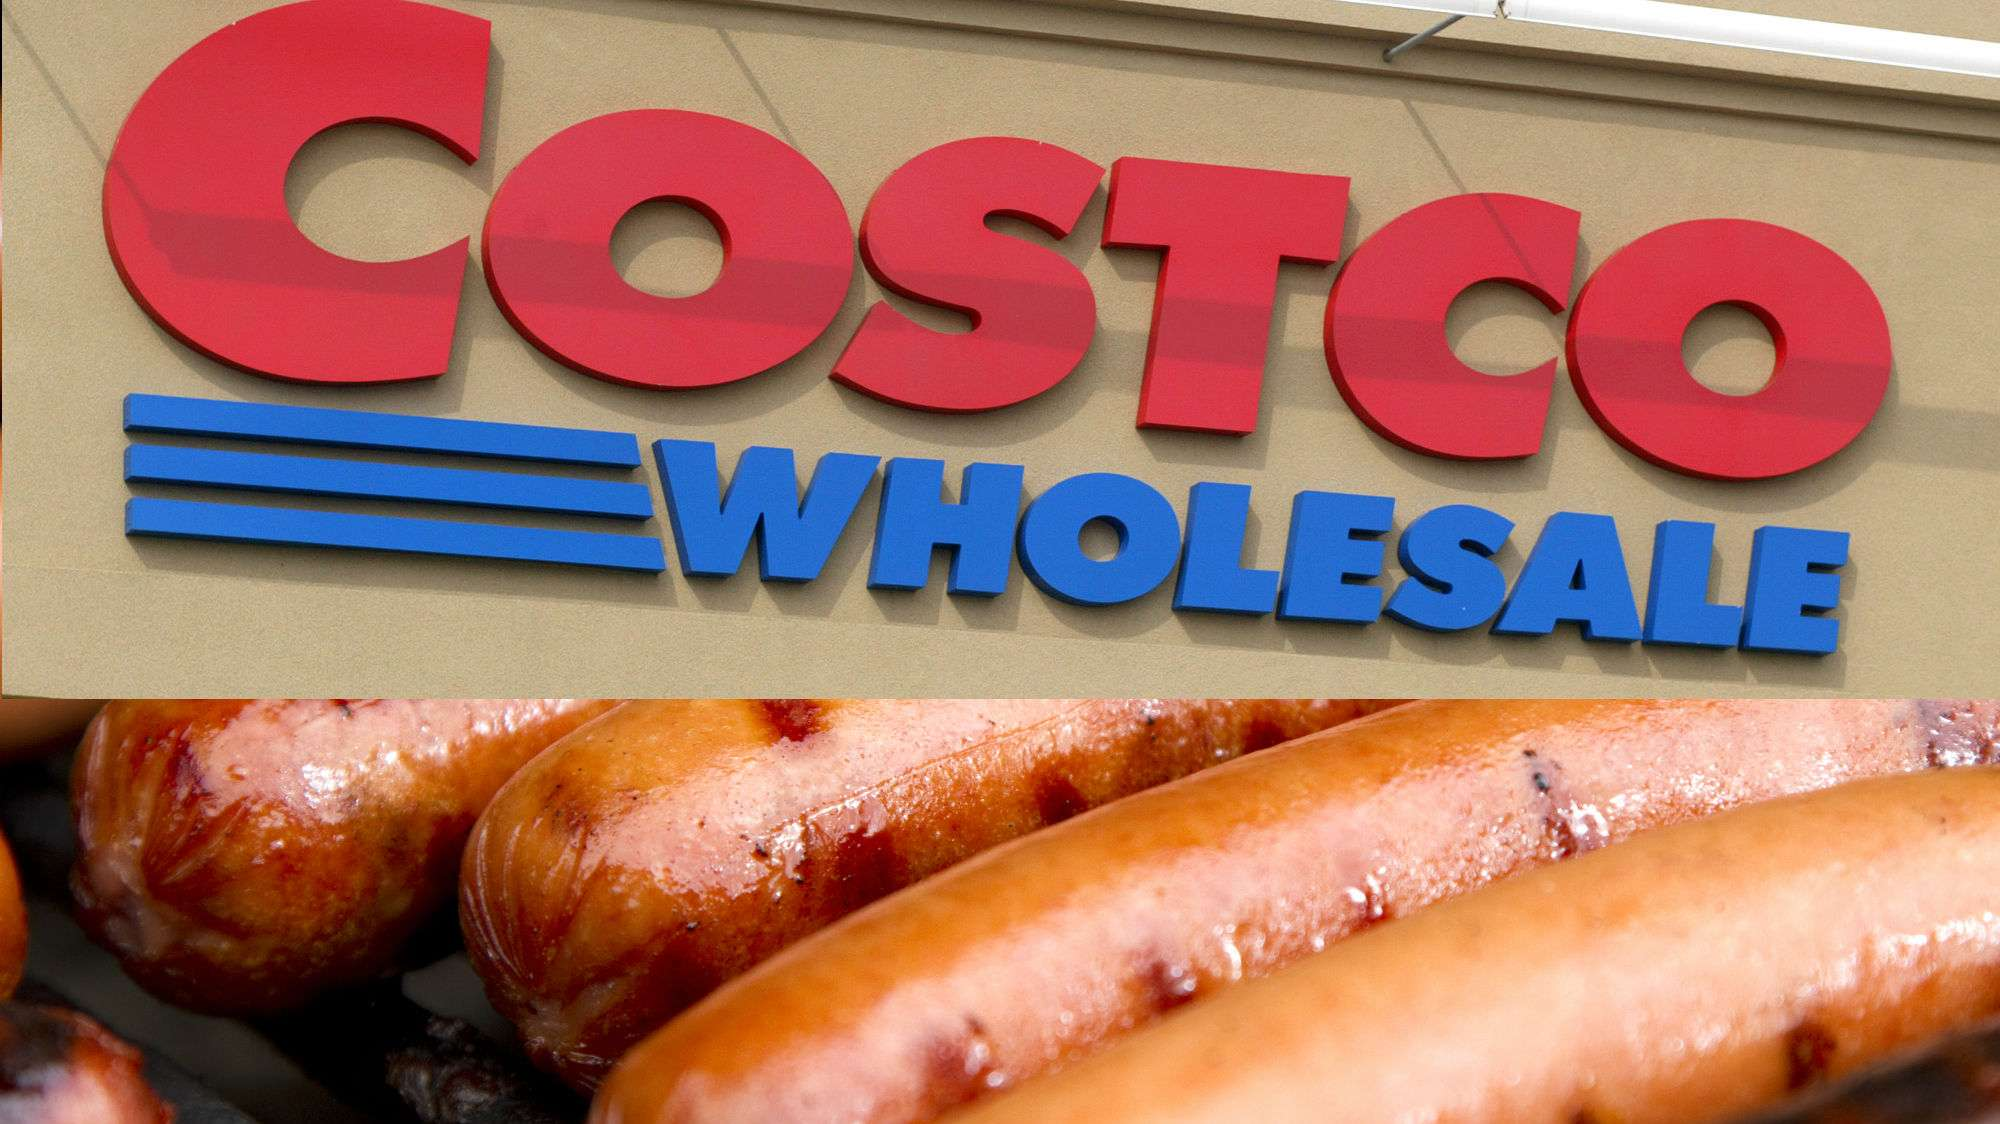 Costco: the house that hot dog built